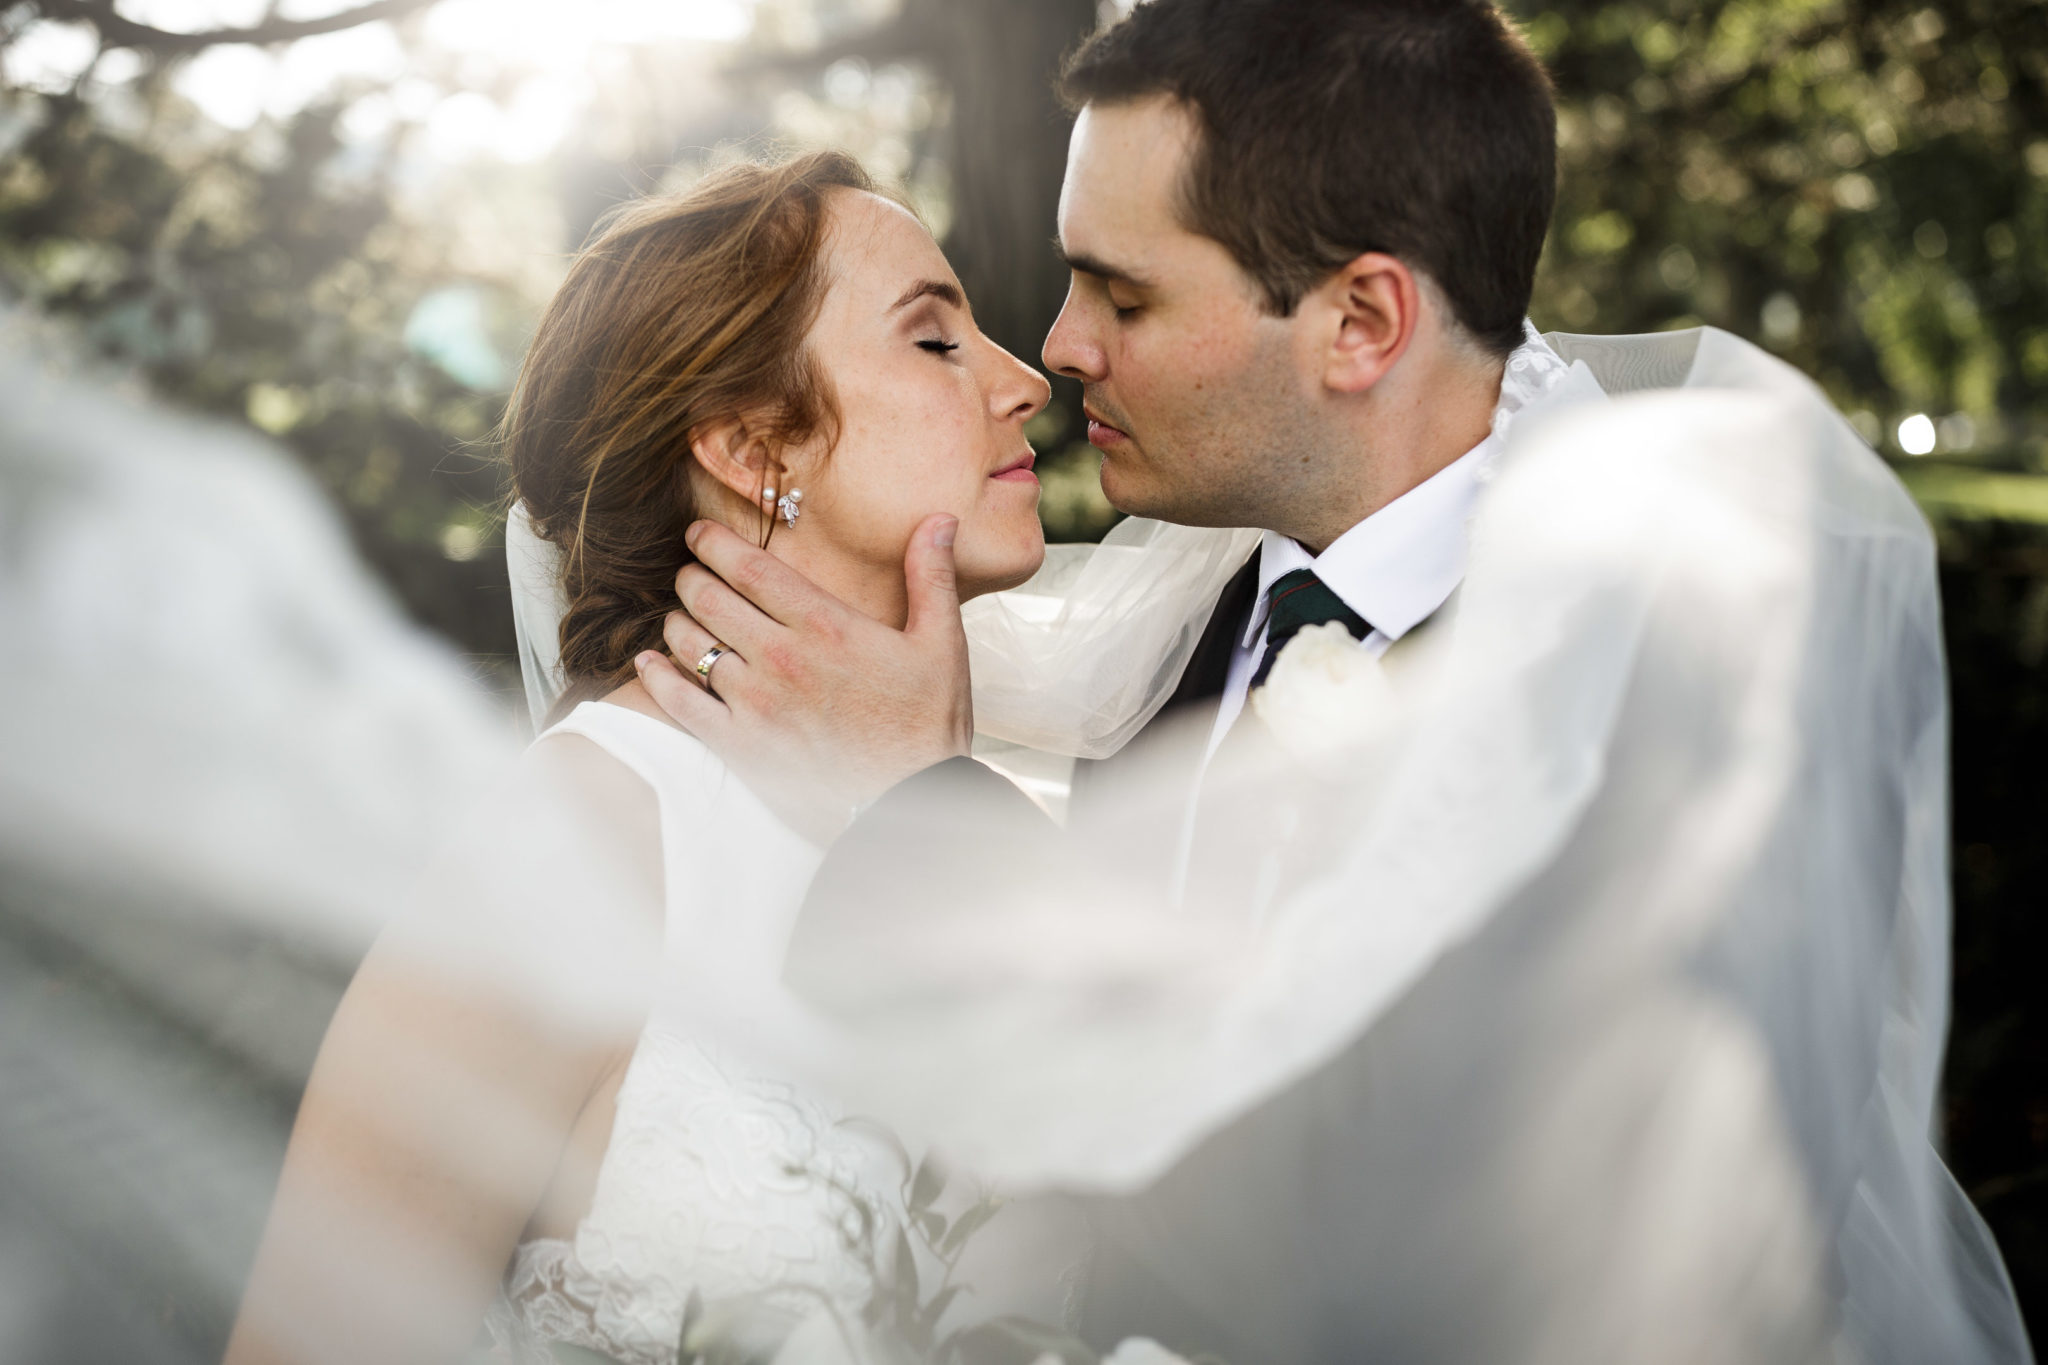 wind-veil-kiss-romance-hamilton-wedding